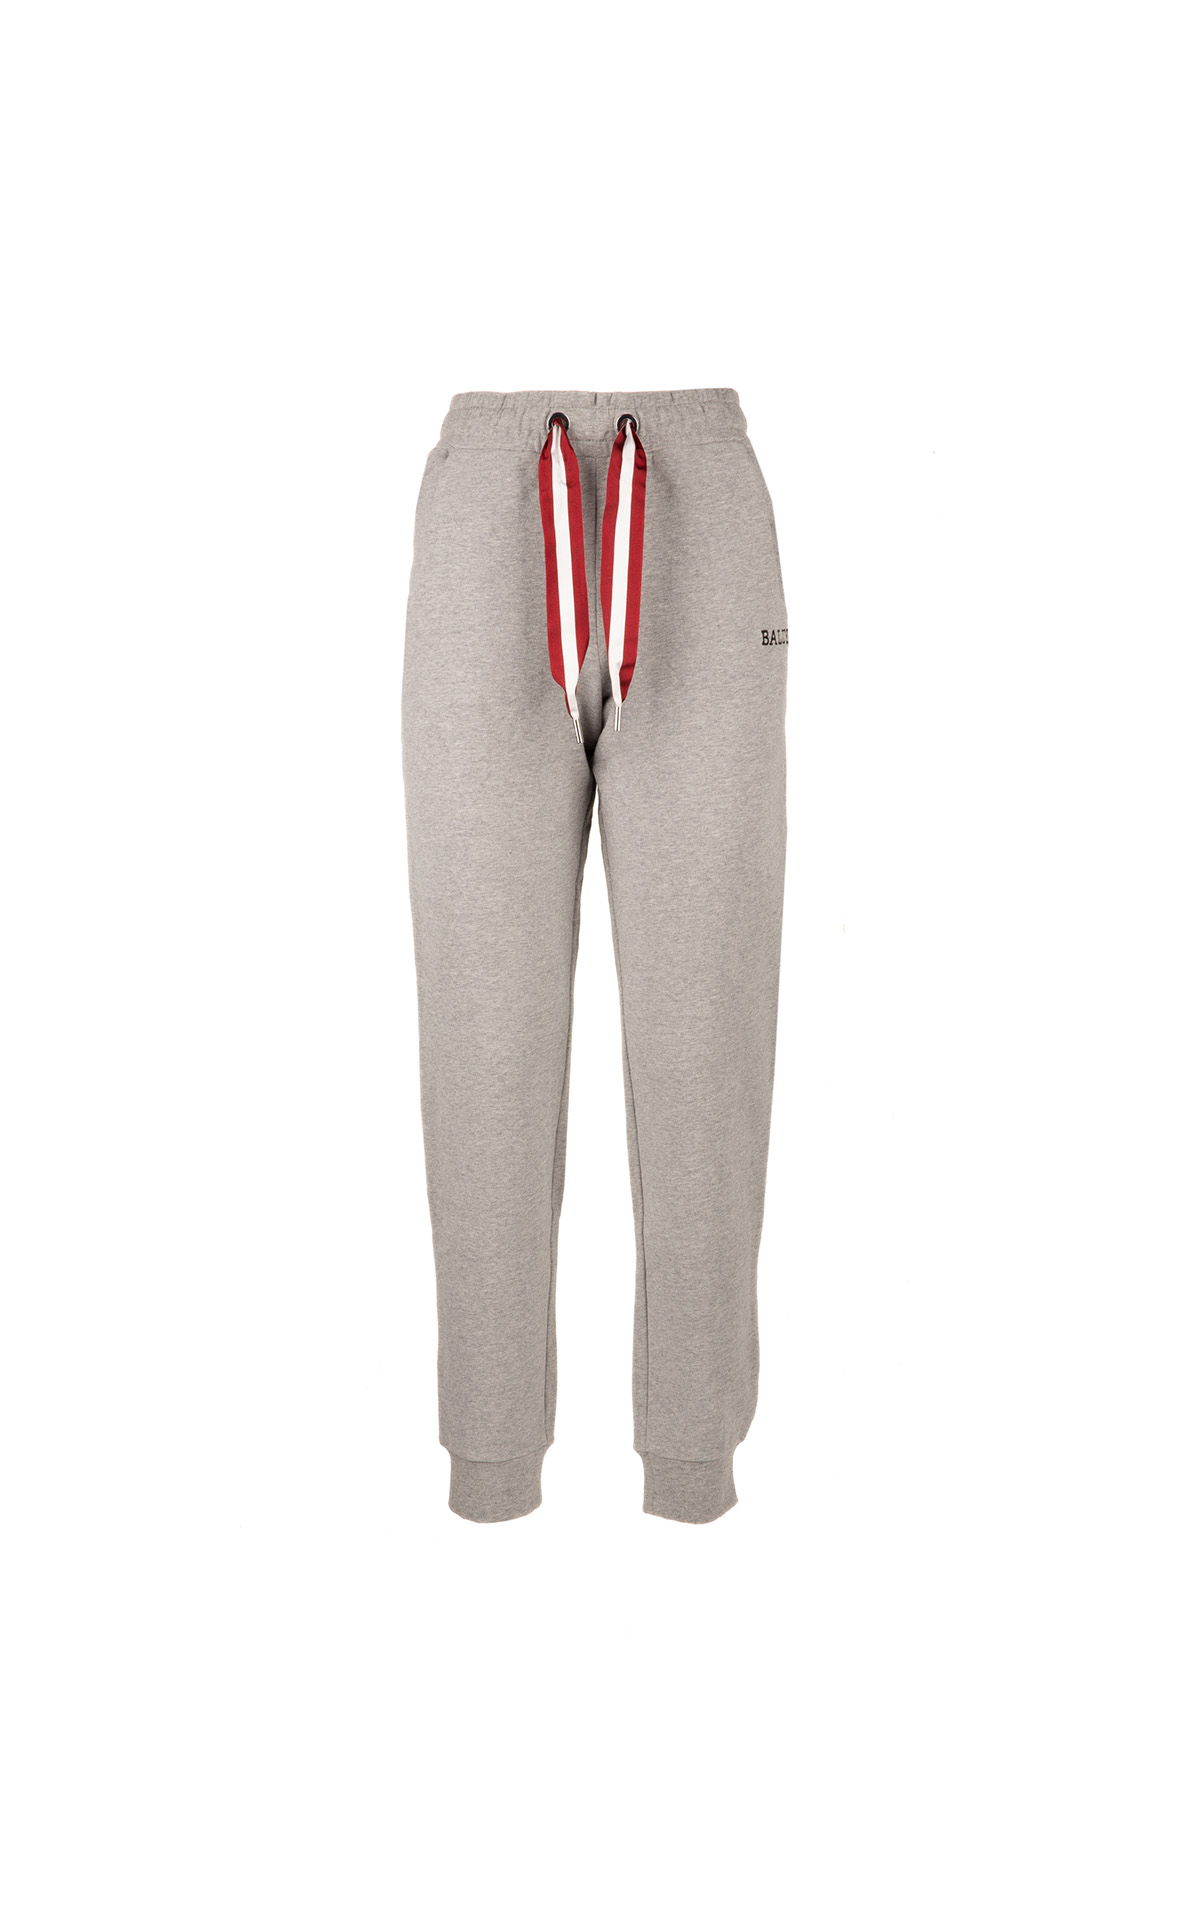 Bally Ladies grey trousers from Bicester Village